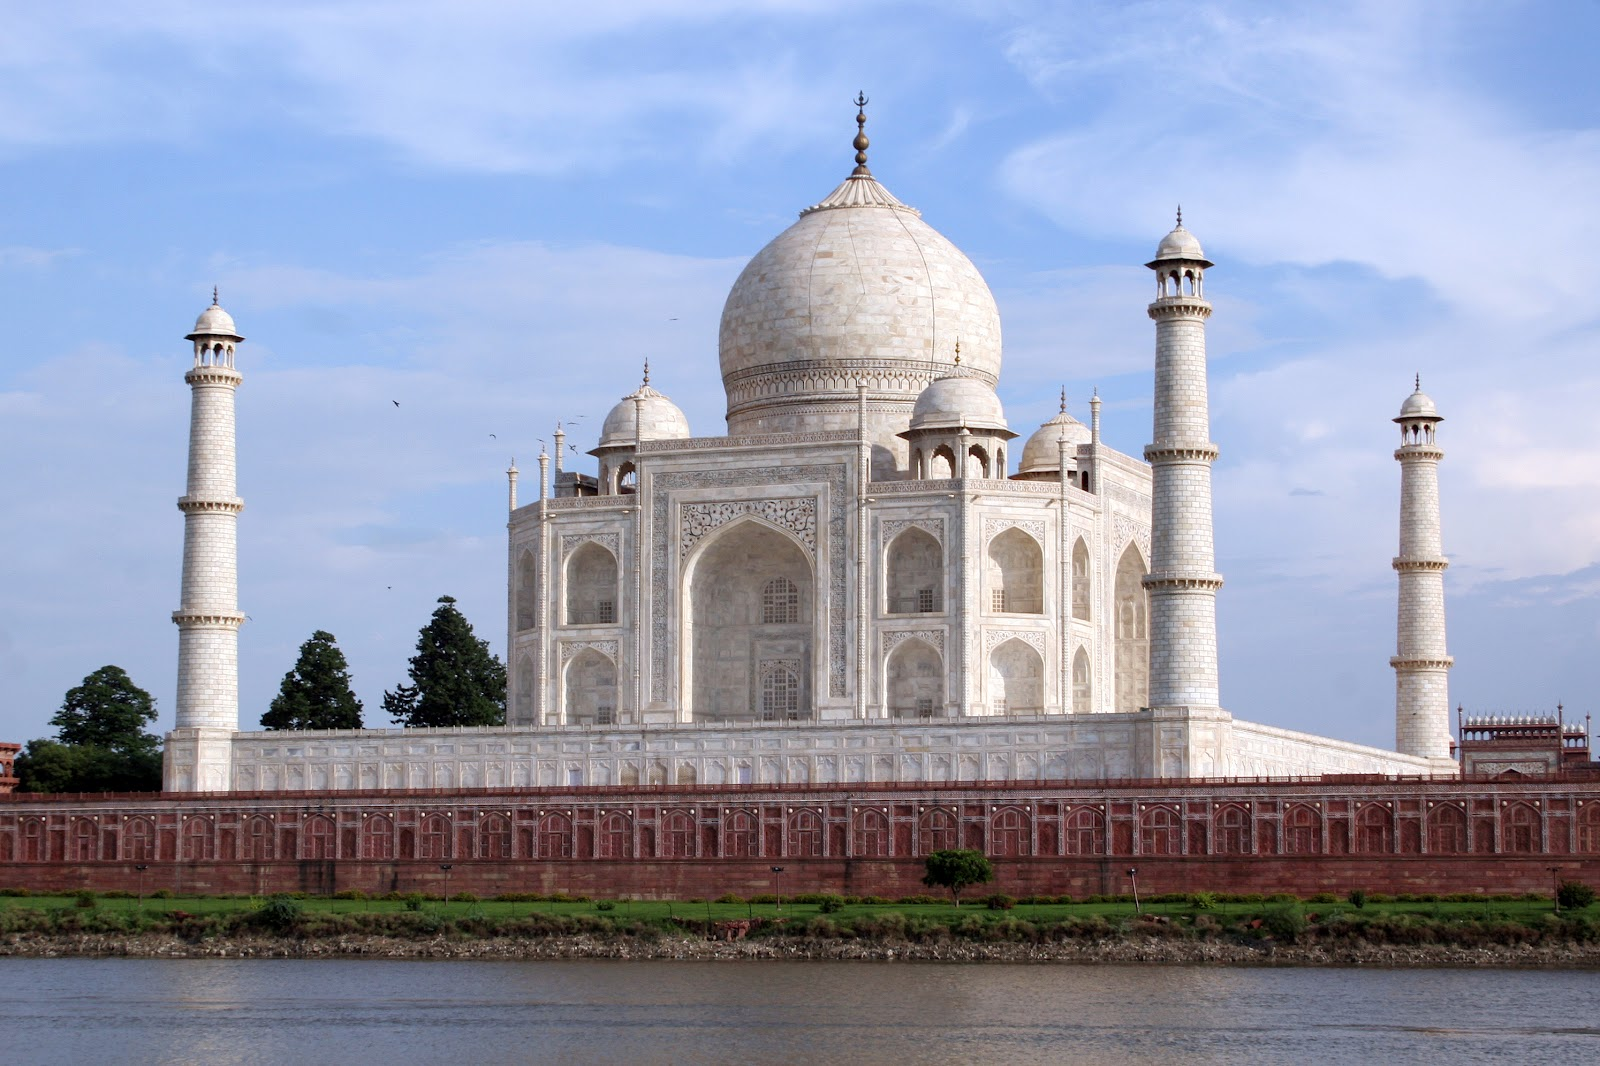 attractions related to taj mahal The taj mahal isn't only a famous place to visit in india, it's famous all around the  globe, with  anyhow, here are my little tips for actually visiting the taj mahal   related  agra is a famous tourist attractions of india located in uttar pardesh.